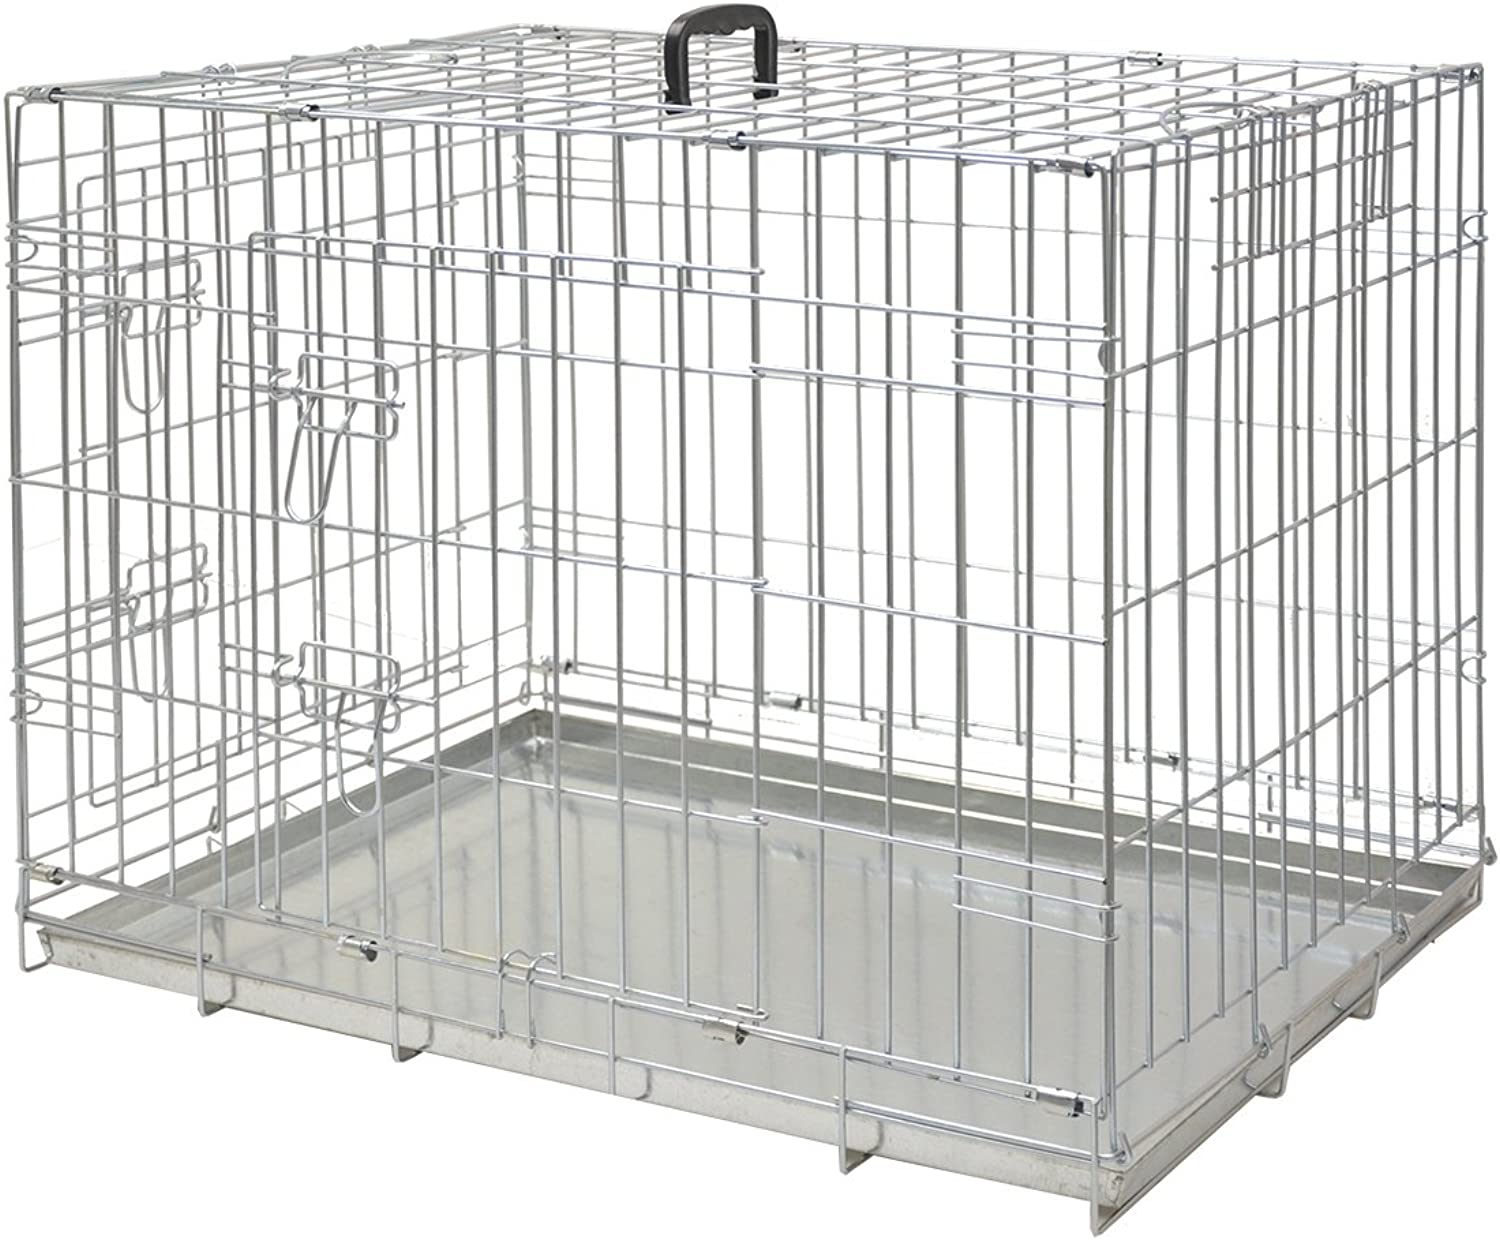 Nobby Zinc Plated Transport Cage Foldable, 78 x 55 x 62 cm